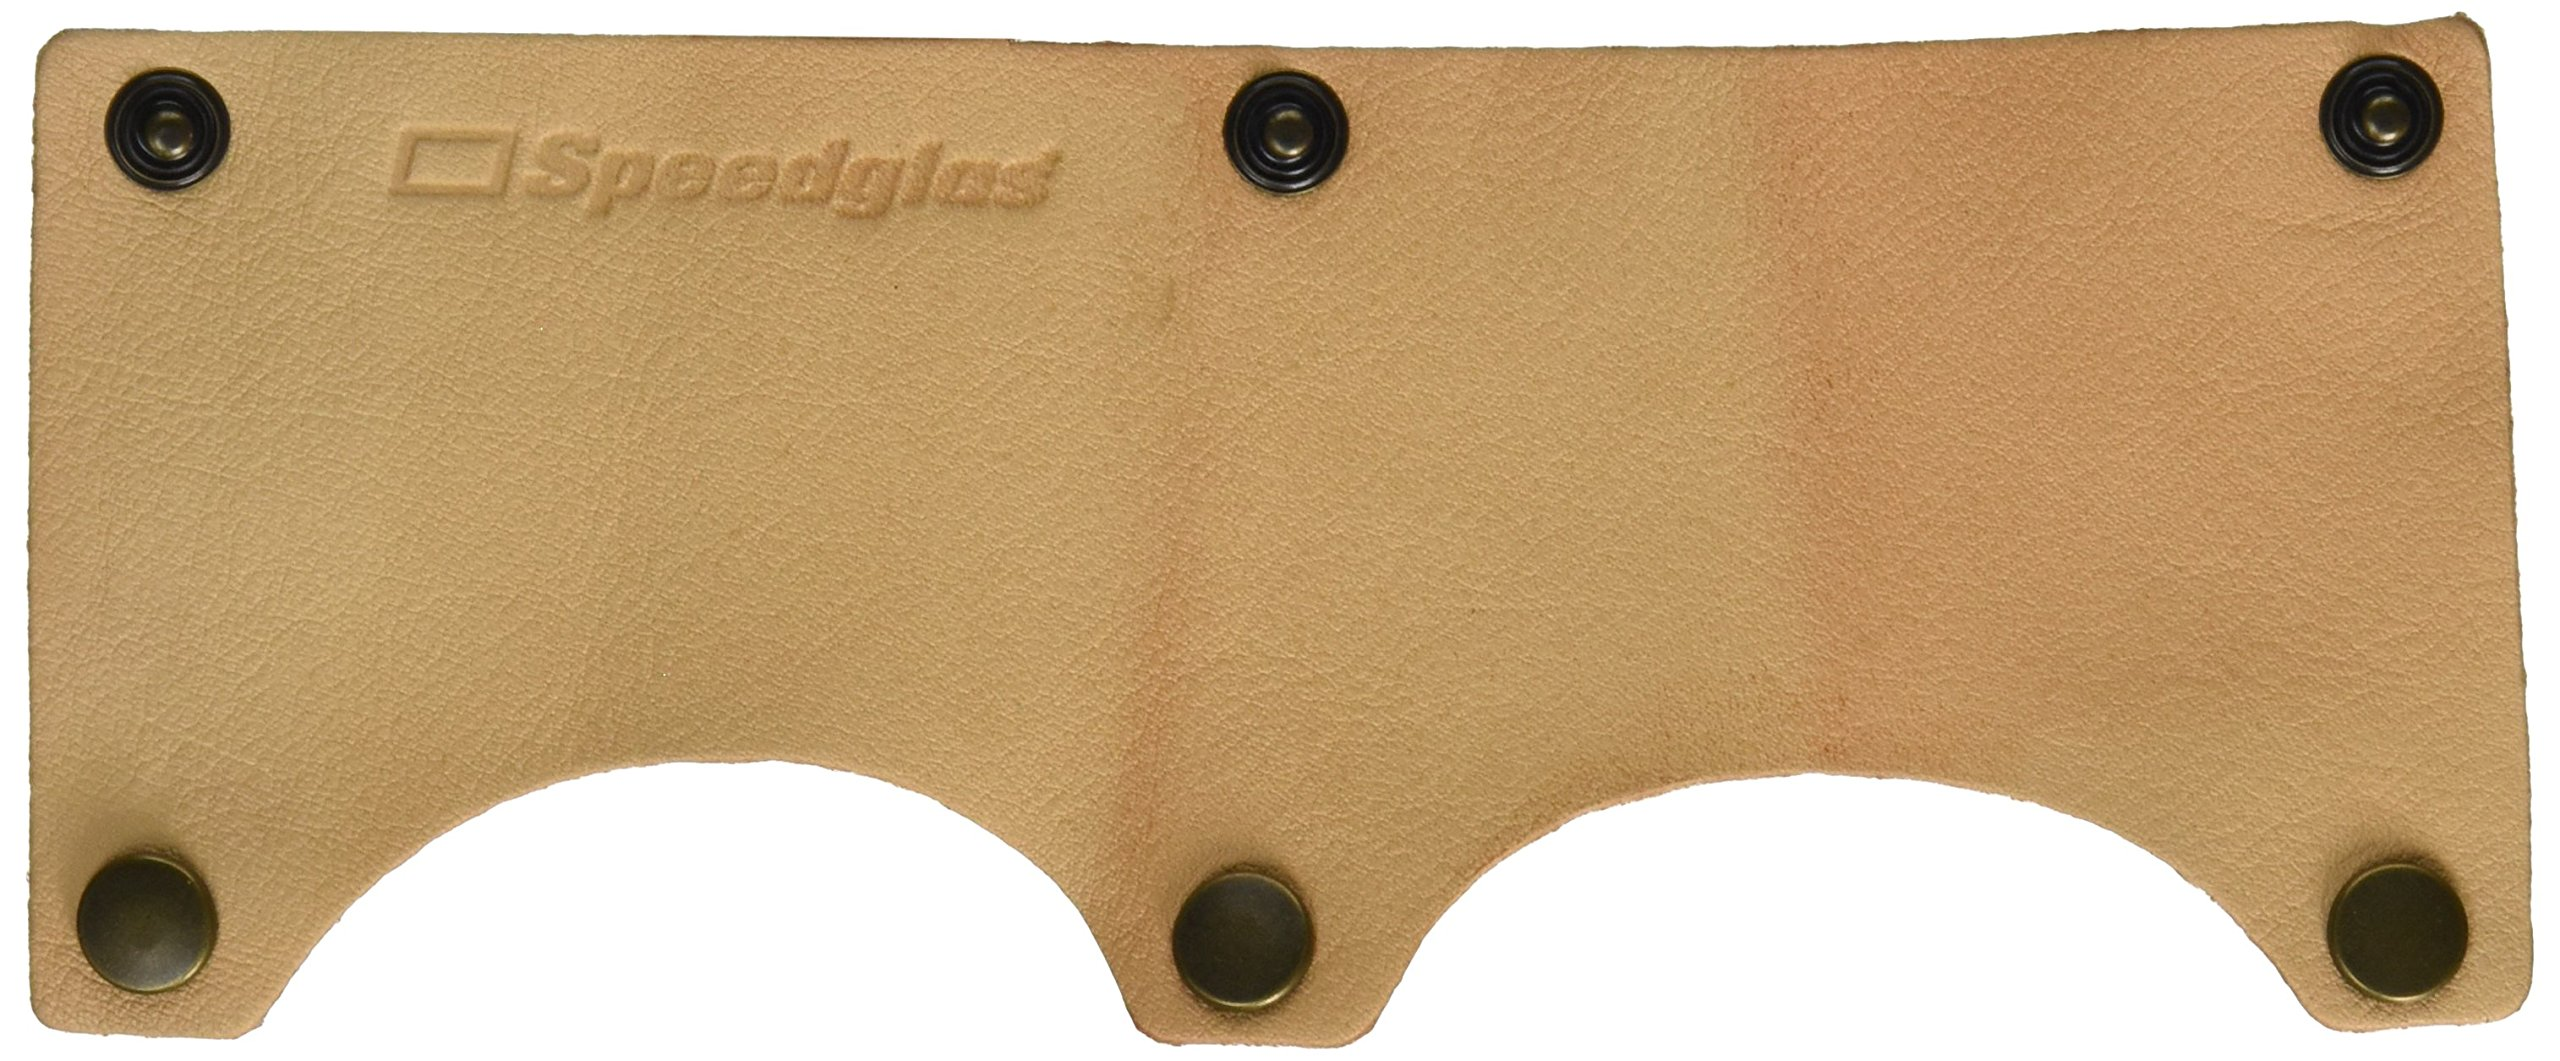 3M Speedglas Replacement Sweatband, Welding Safety 02-0024-01/37125(AAD), Leather